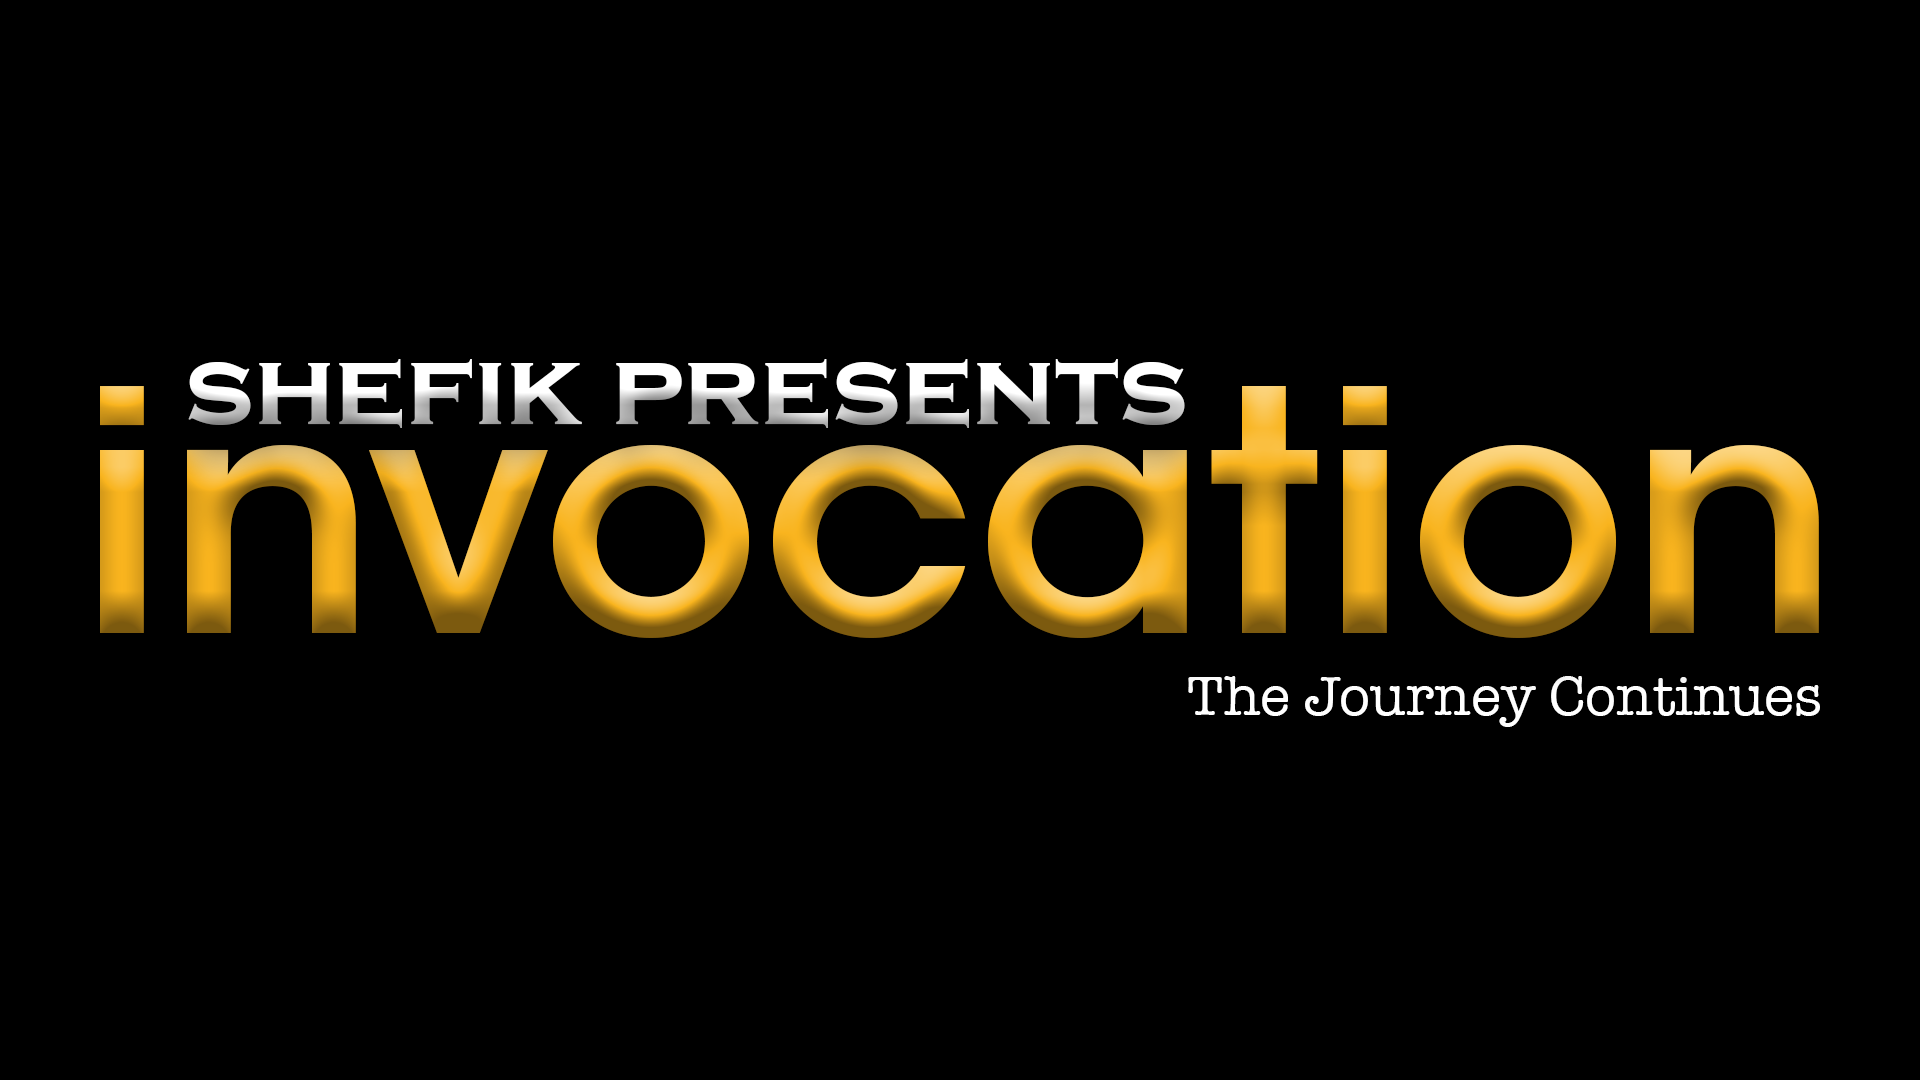 Shefik presents Invocation: The Journey Continues